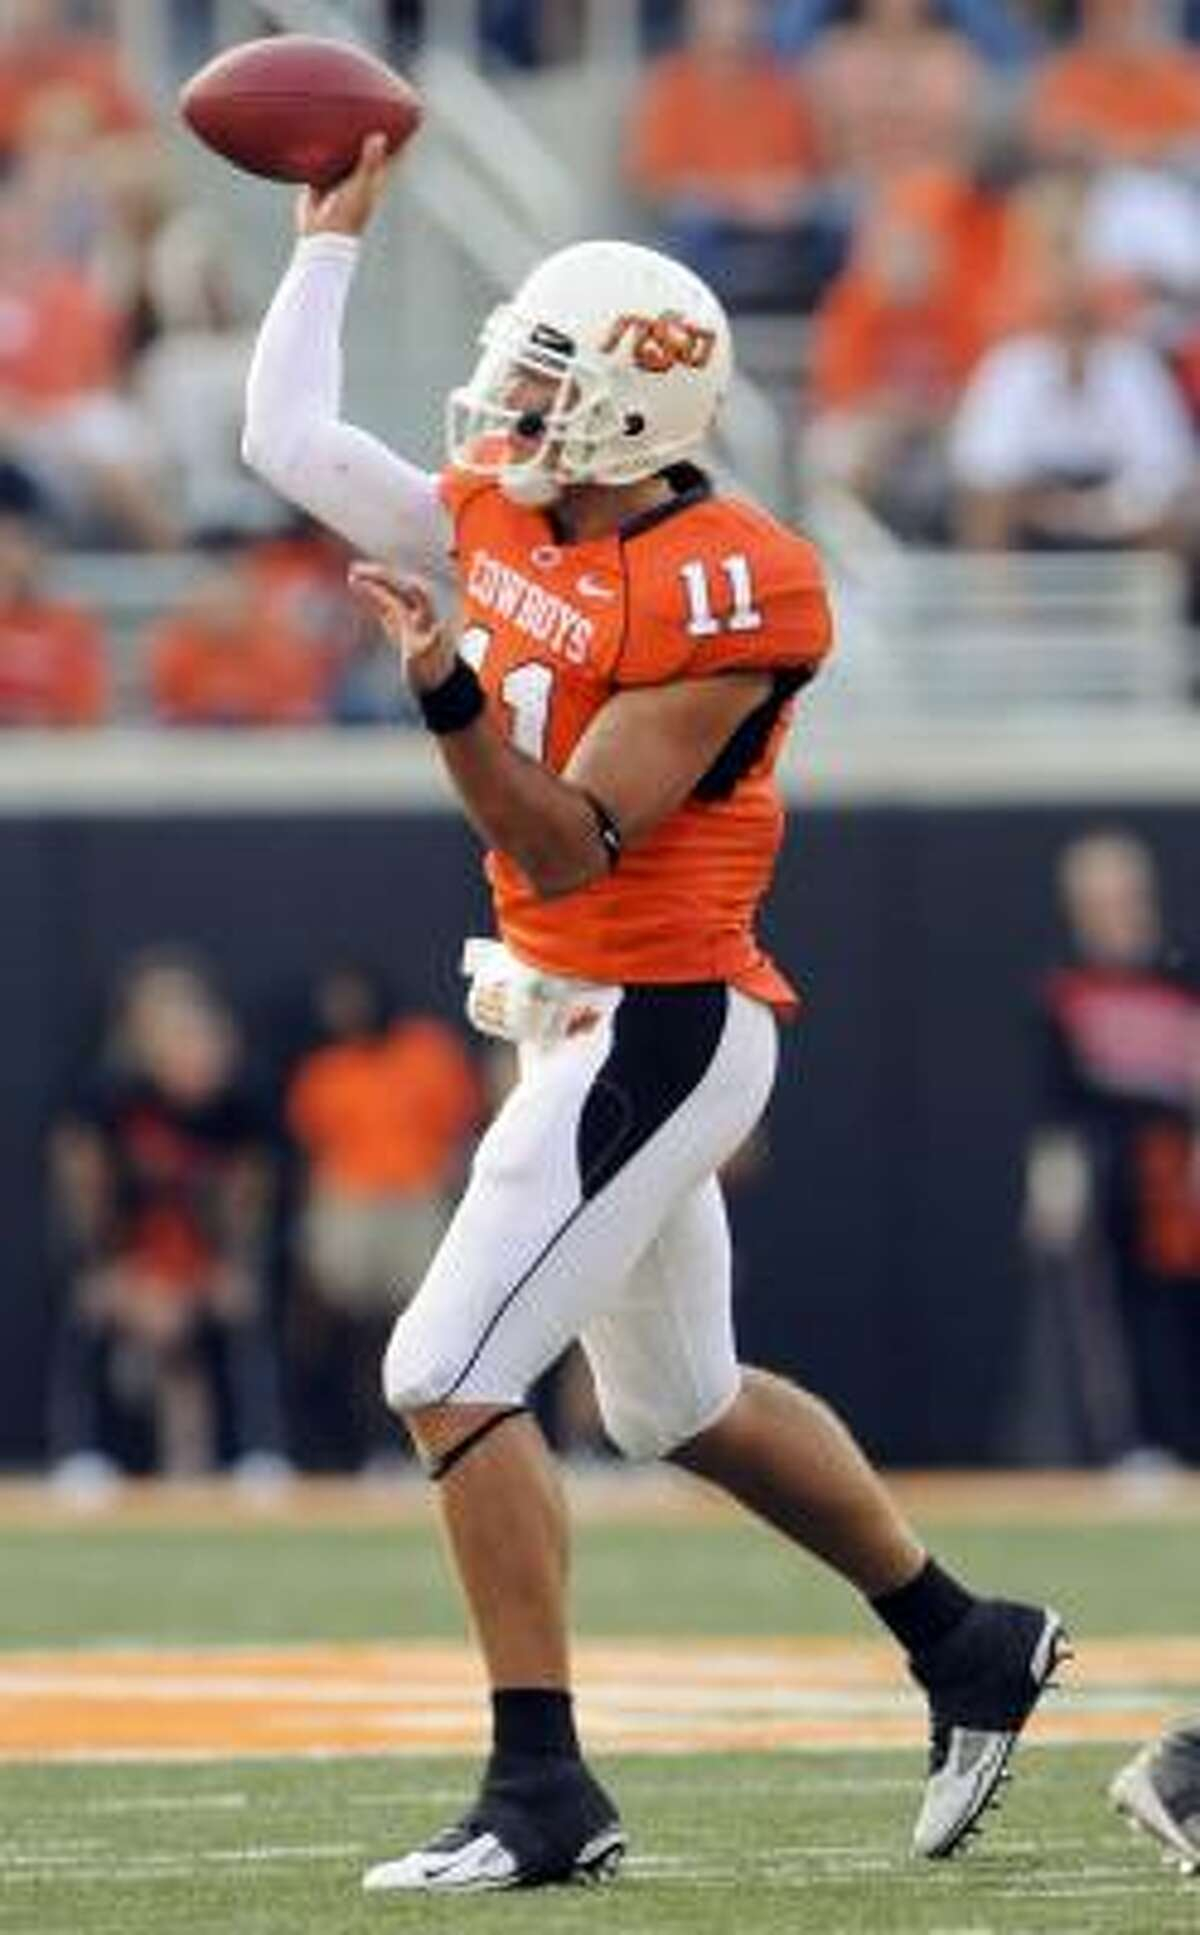 Oklahoma State quarterback Zac Robinson throws a pass during the second half.